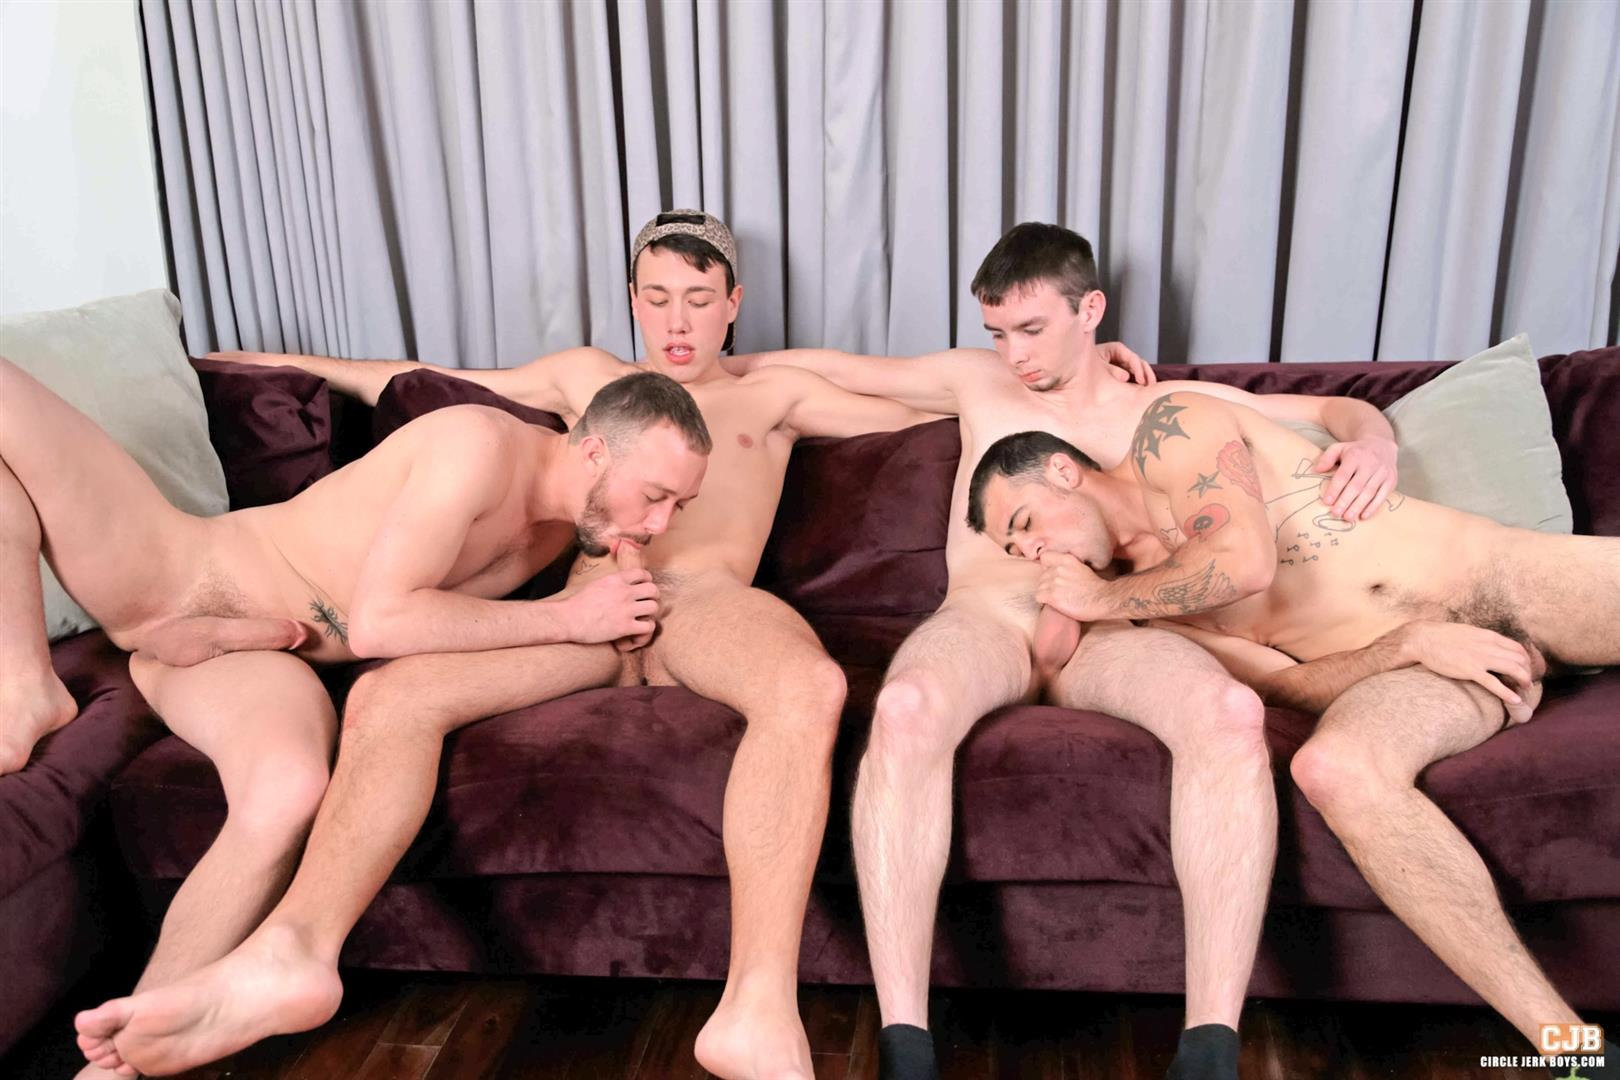 Circle Jerk Boys Kirk Cummings and Trent Jackson and Jake Jammer and Blake Stone Cock Sucking Young Guys Amateur Gay Porn 04 4 Hard Cocks, 4 Young Men, 4 Cock Suckers, 4 Loads Of Cum